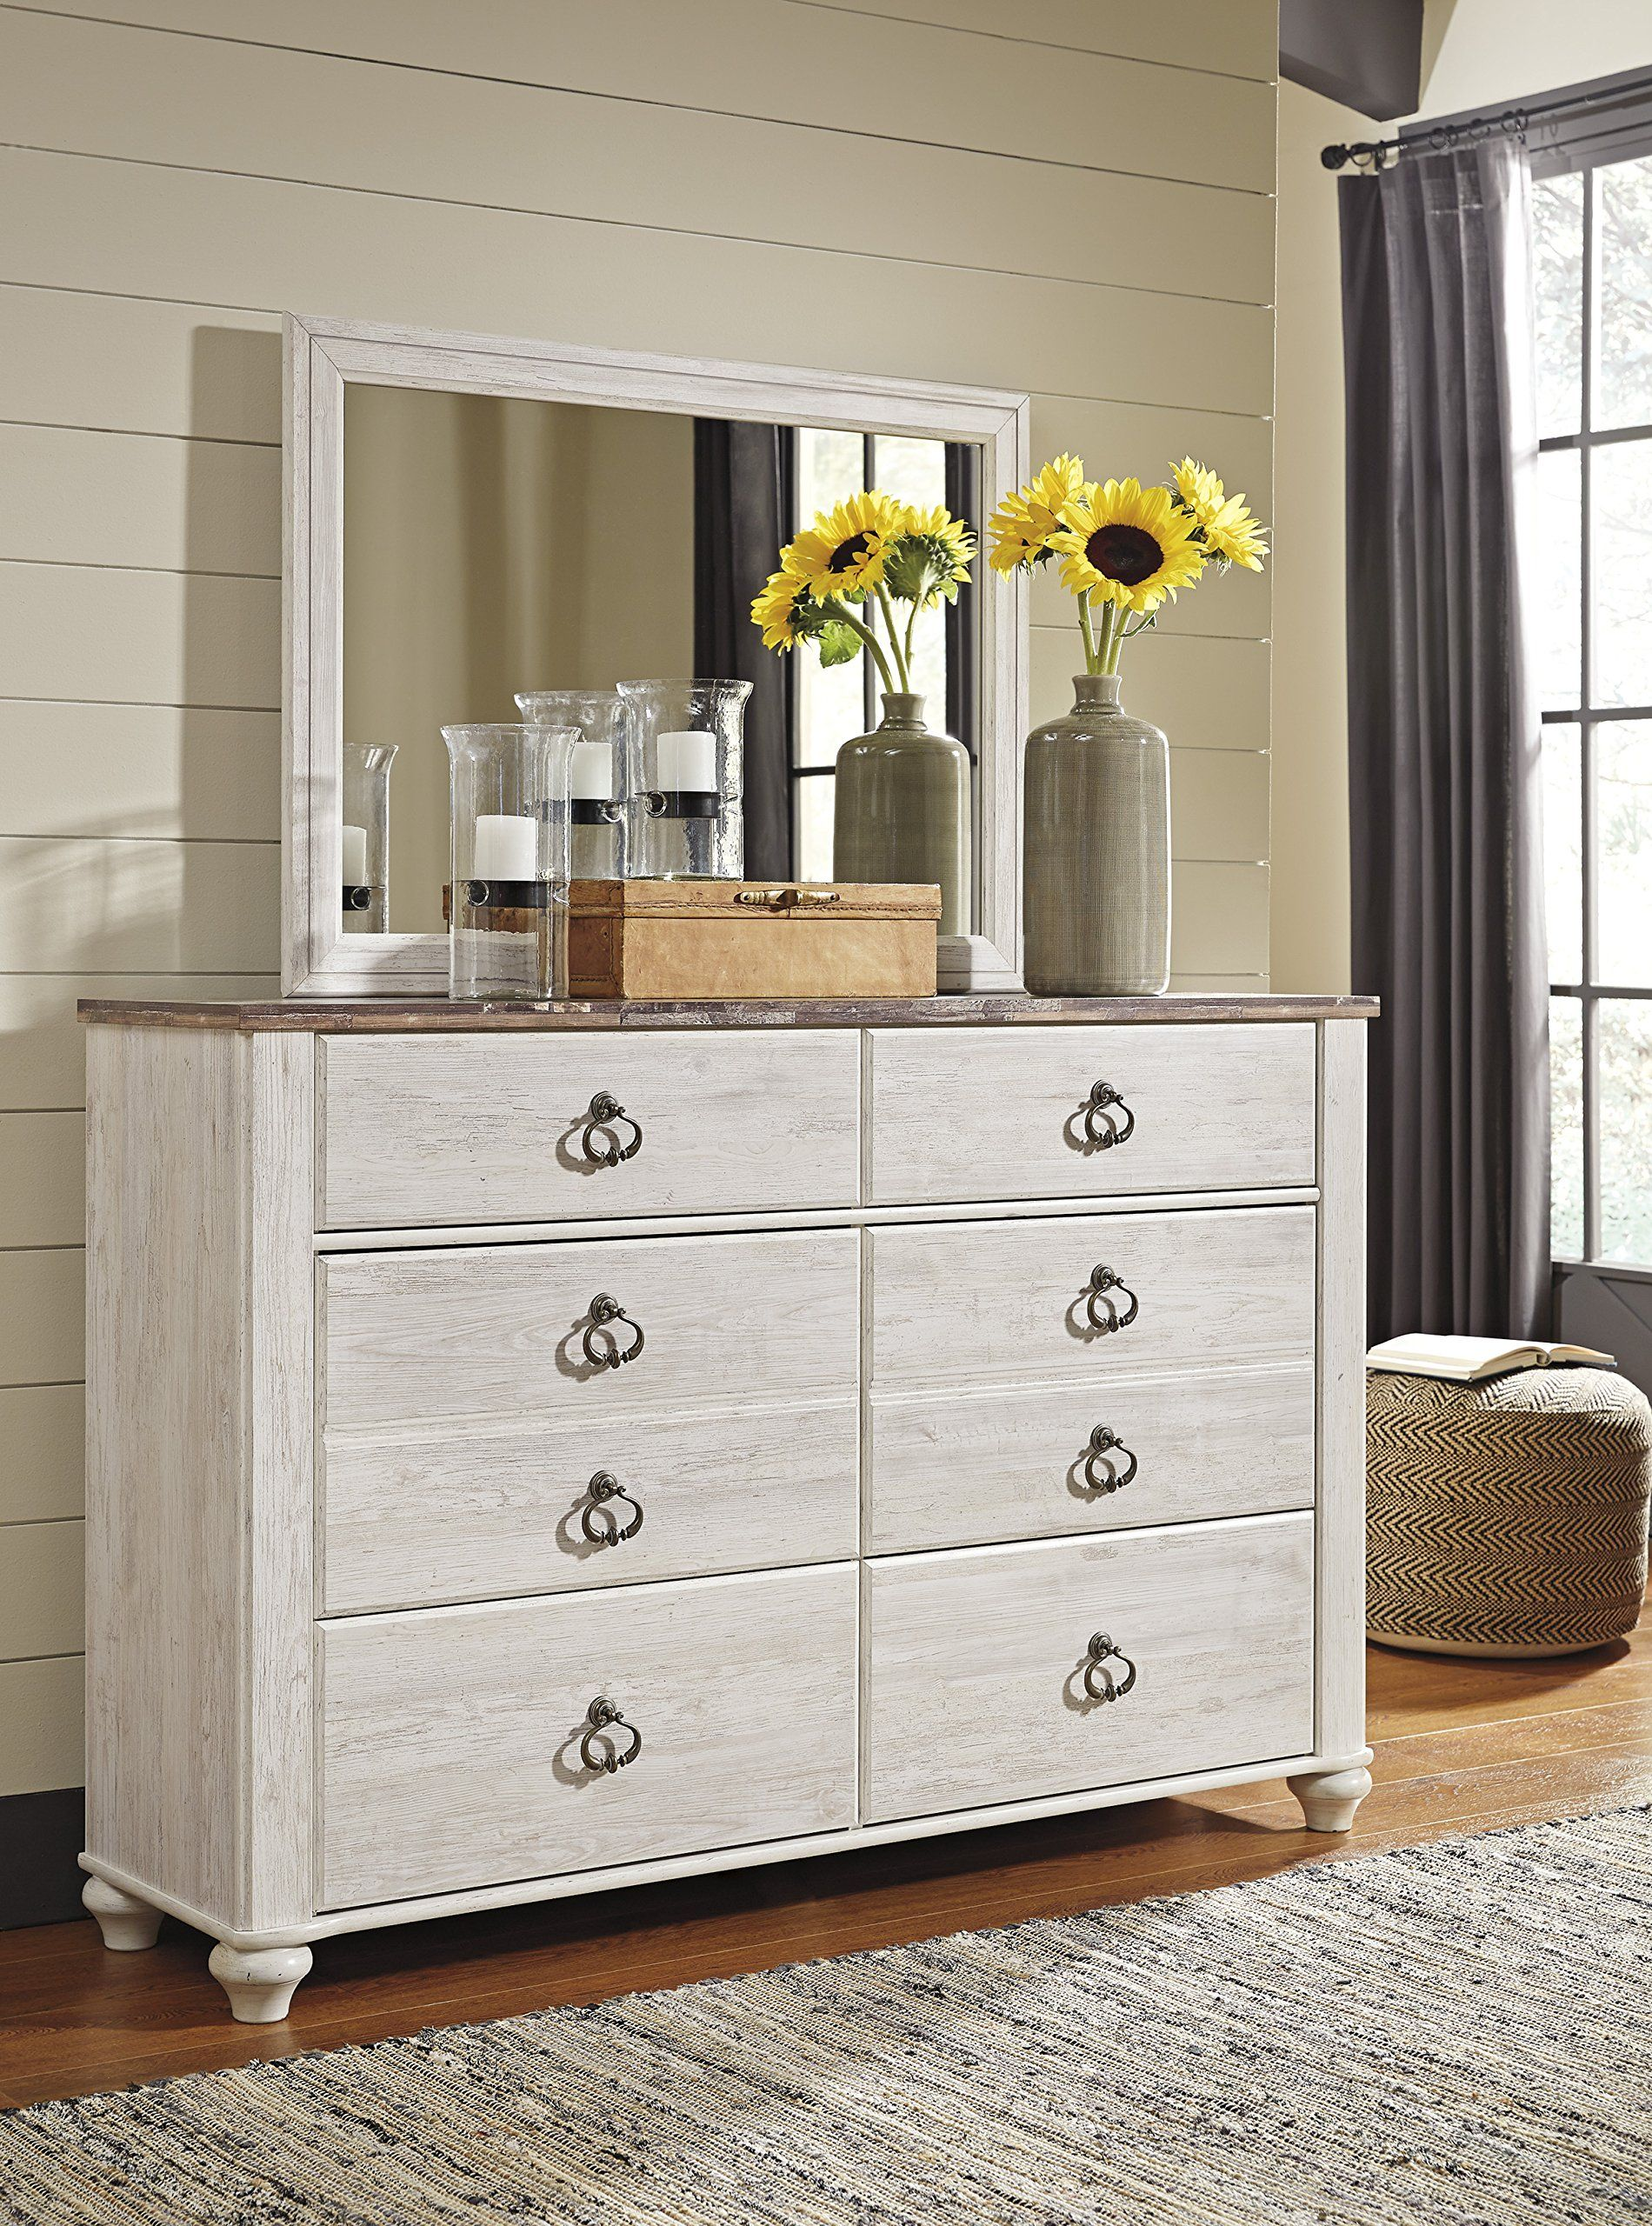 Willannet Casual Whitewash Color Wood Bed Room Set King Panel Headboard Dresser Mirror A Shabby Chic Dresser White Washed Bedroom Furniture Dresser With Mirror